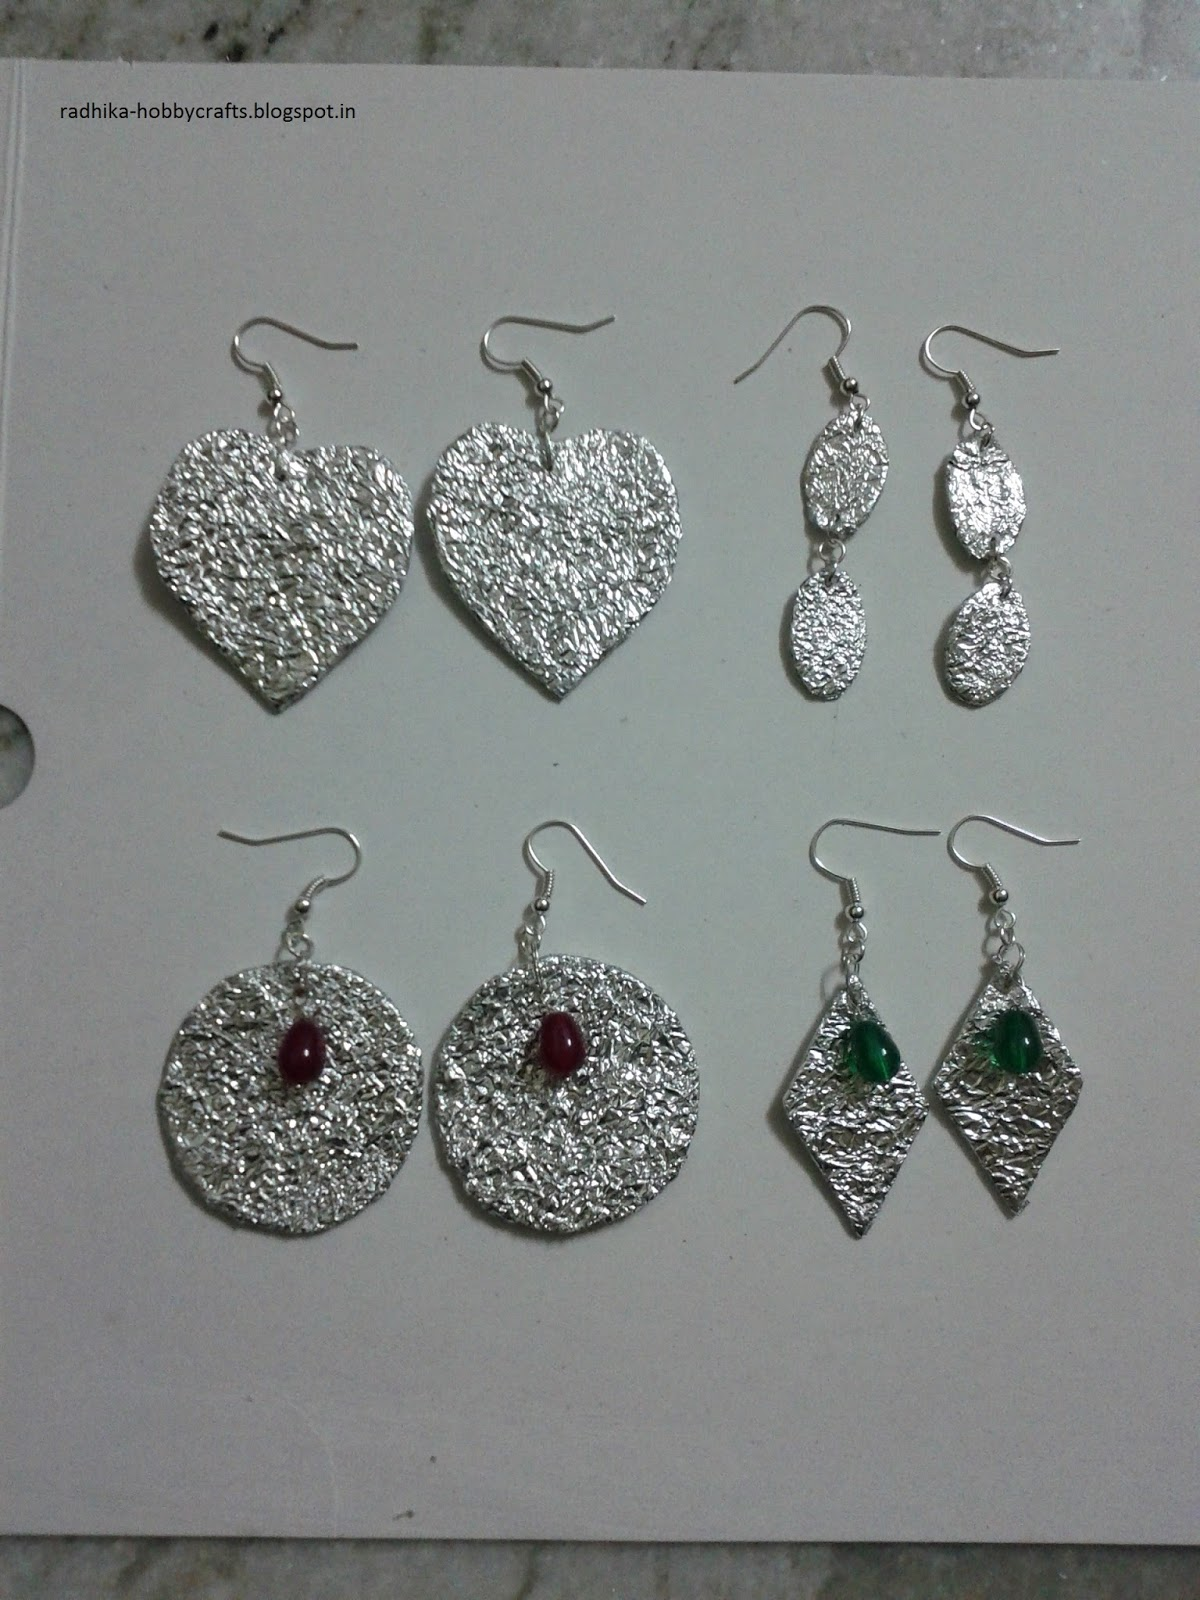 Hobby Crafts :): Aluminium foil earrings